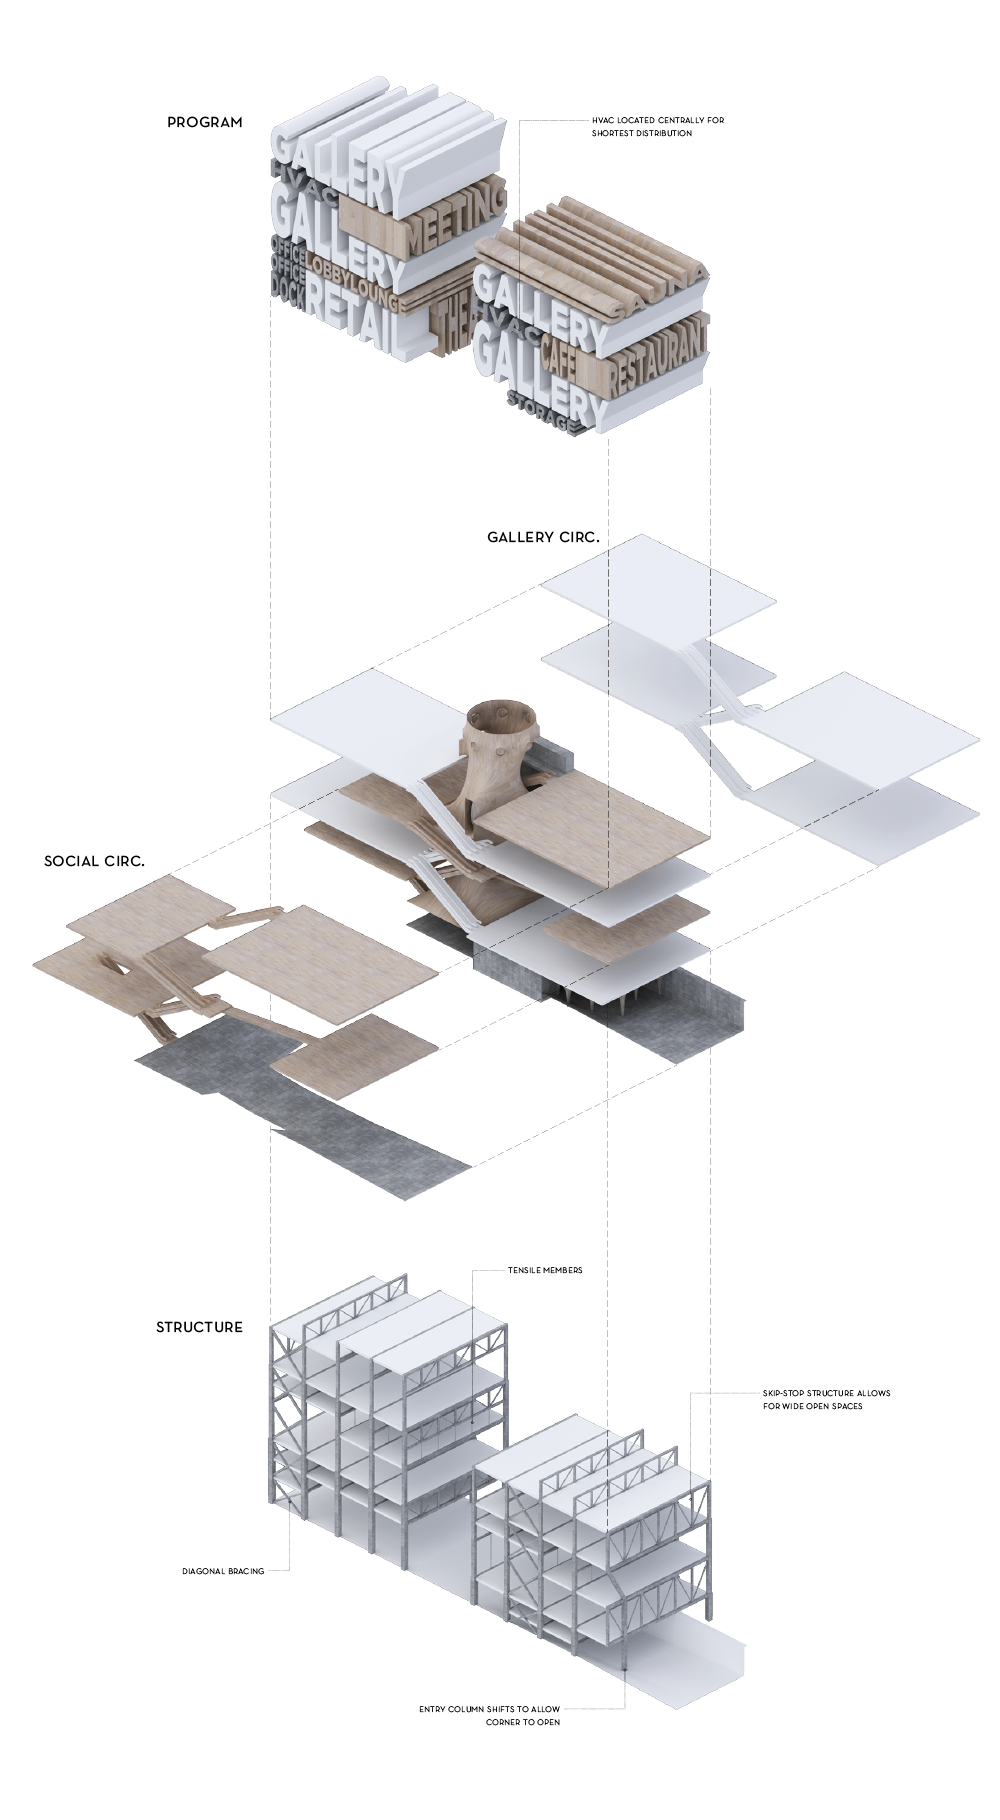 Pin By Sayanee Vi On Architectural Drawing Diagram And